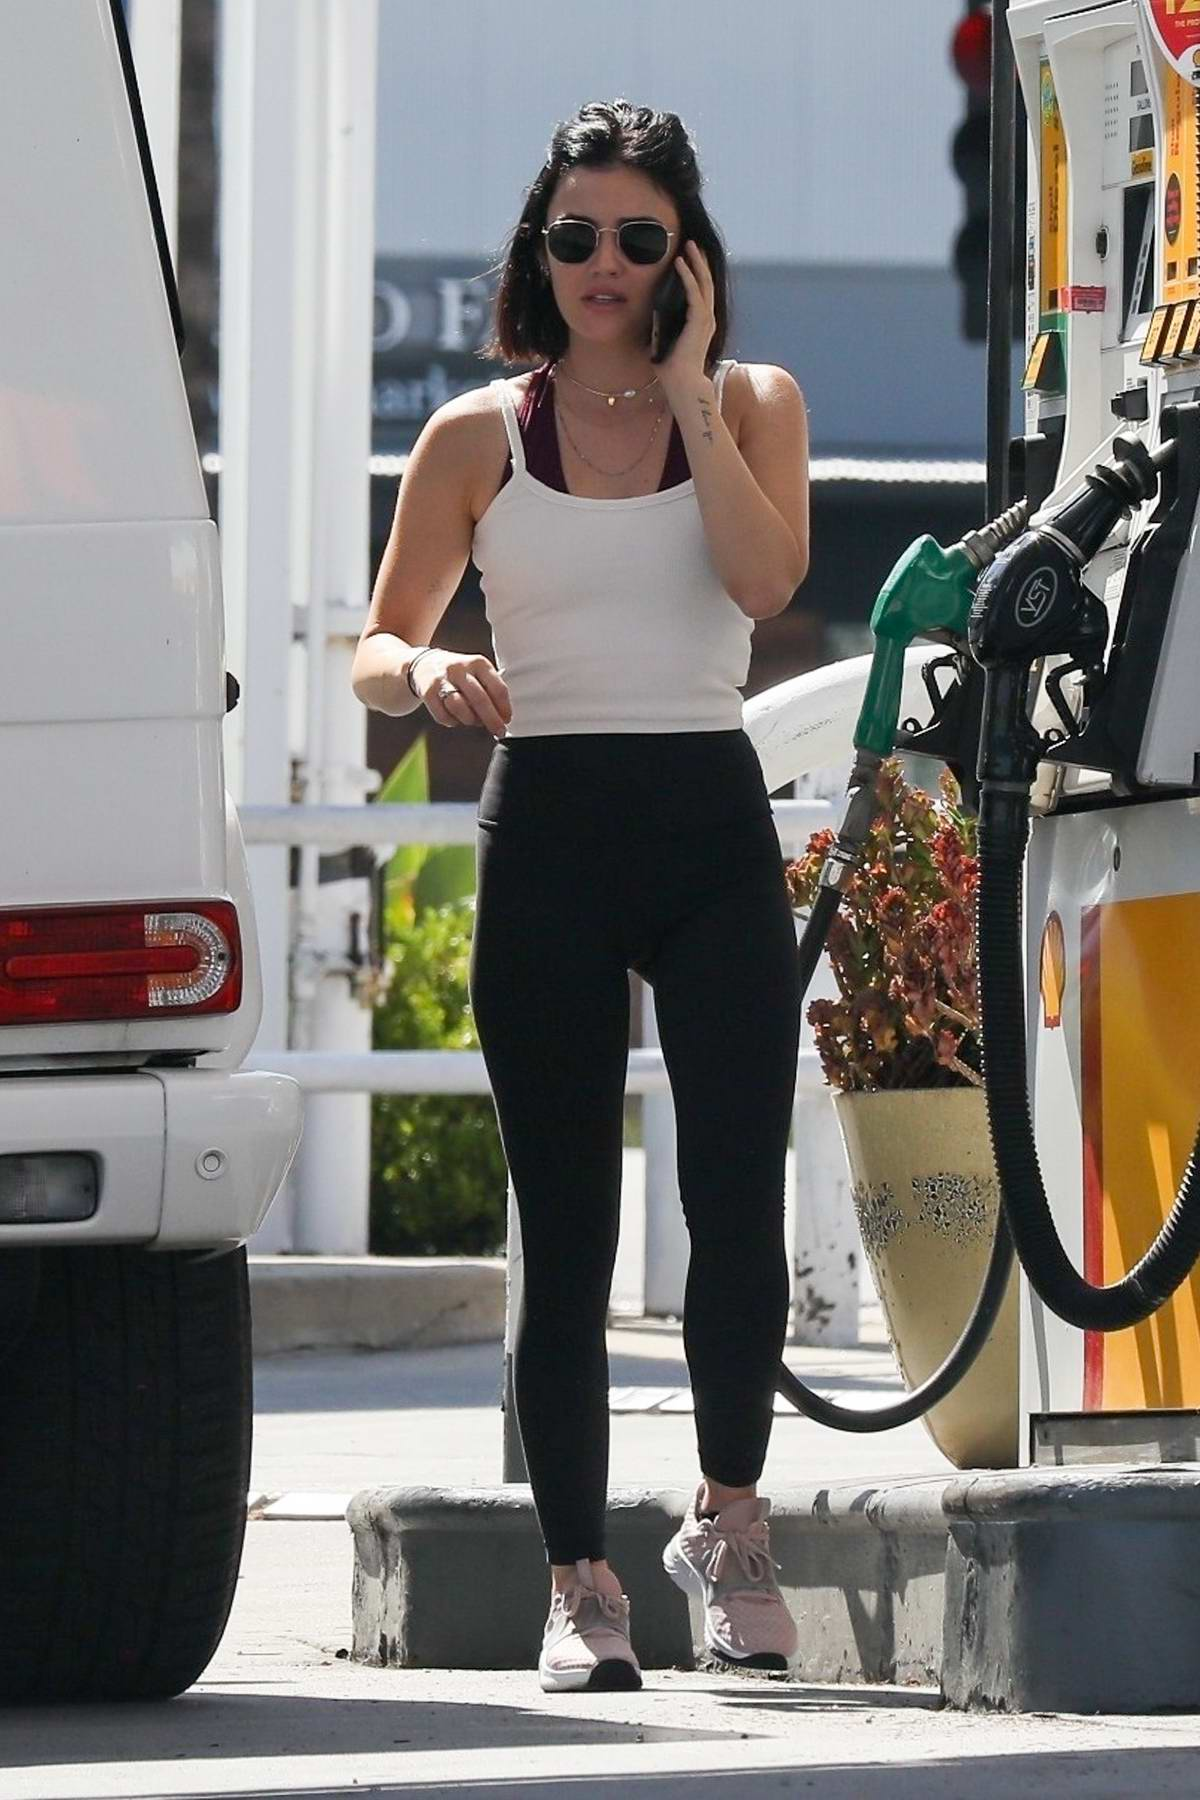 Lucy Hale shows off her slender figure as she stops at a gas station while running a few errands in Beverly Hills, California